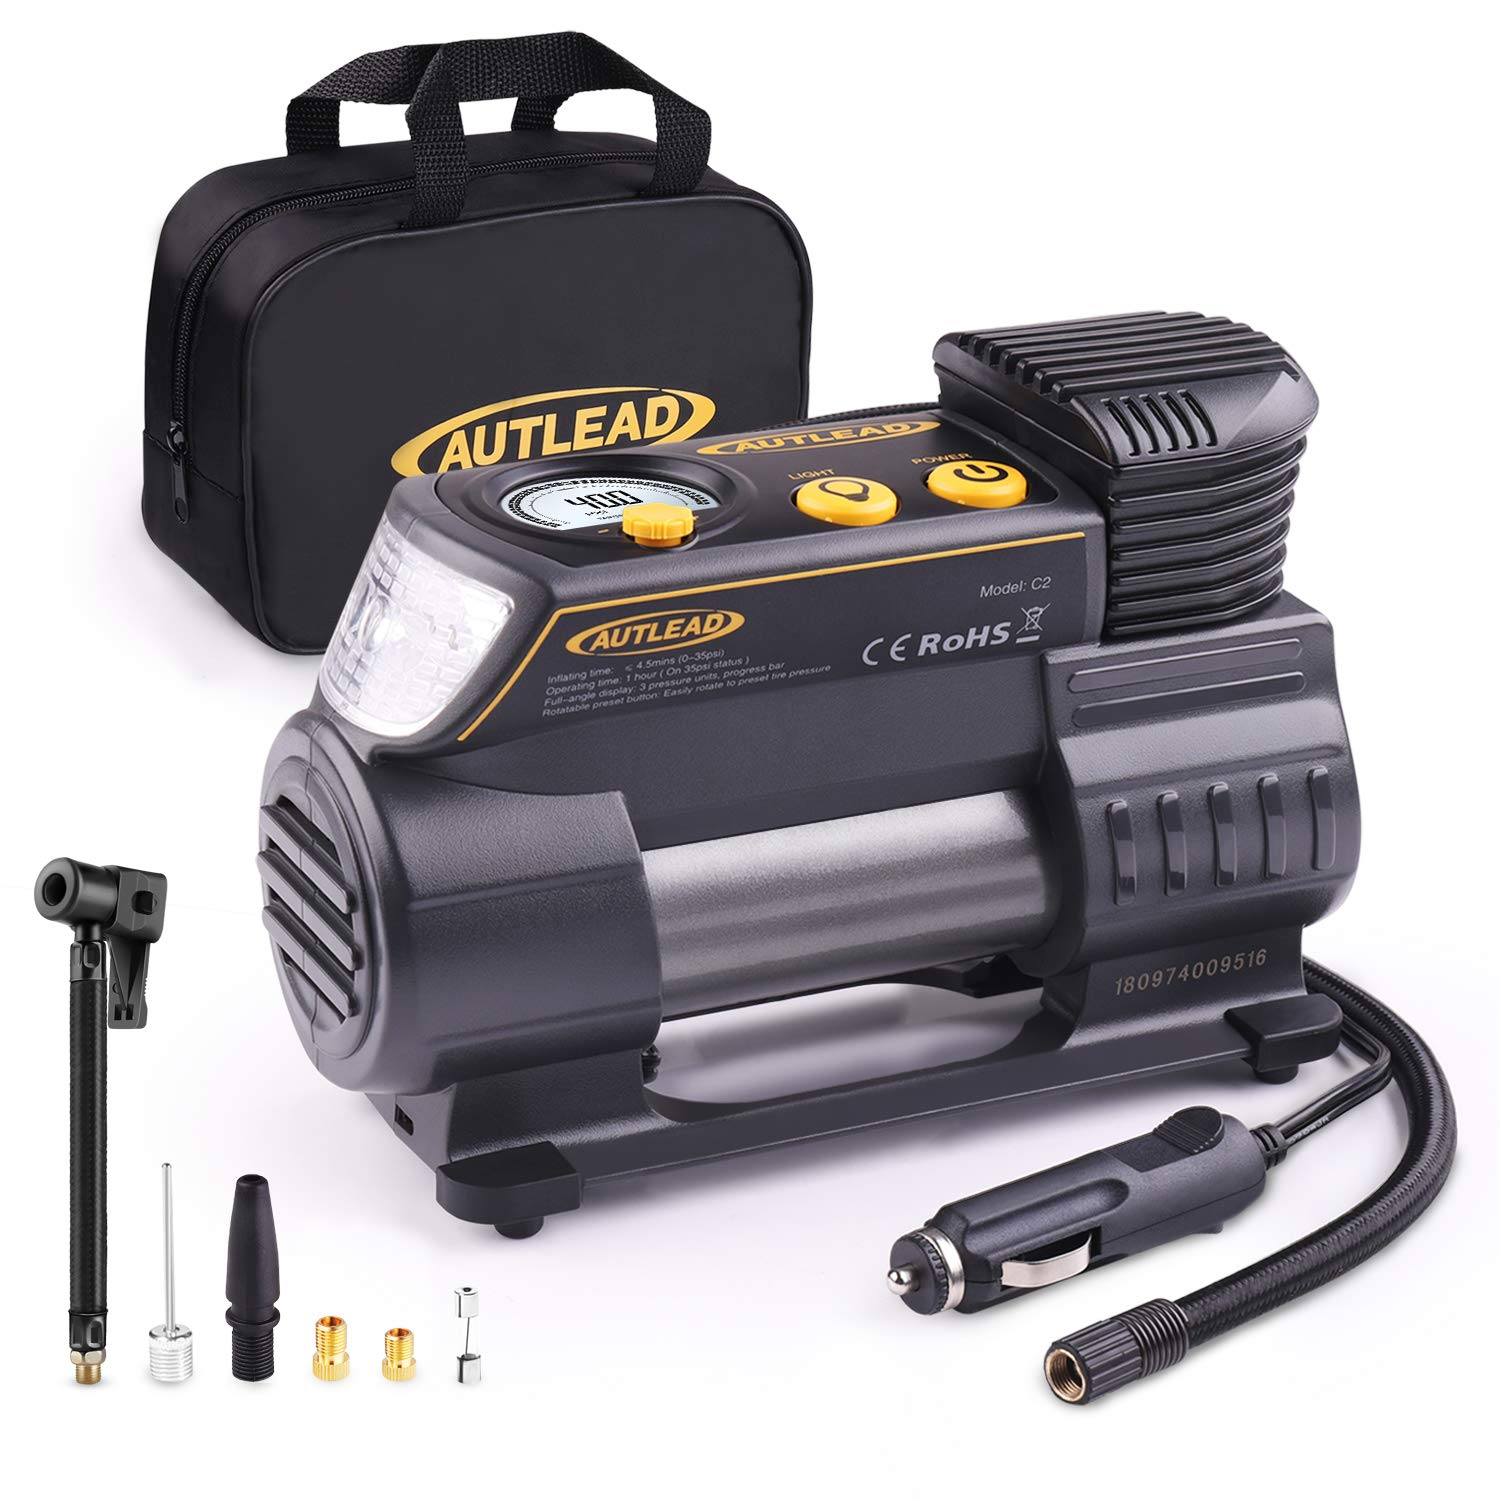 AUTLEAD Tire Inflator, 12V Portable Air Compressor - Compact Auto Tire Pump with Digital Gauge, Emergency Light, Quick Release Chuck, Fast Inflating for Car, Bicycle, Ball, Balloon - C2 by AUTLEAD